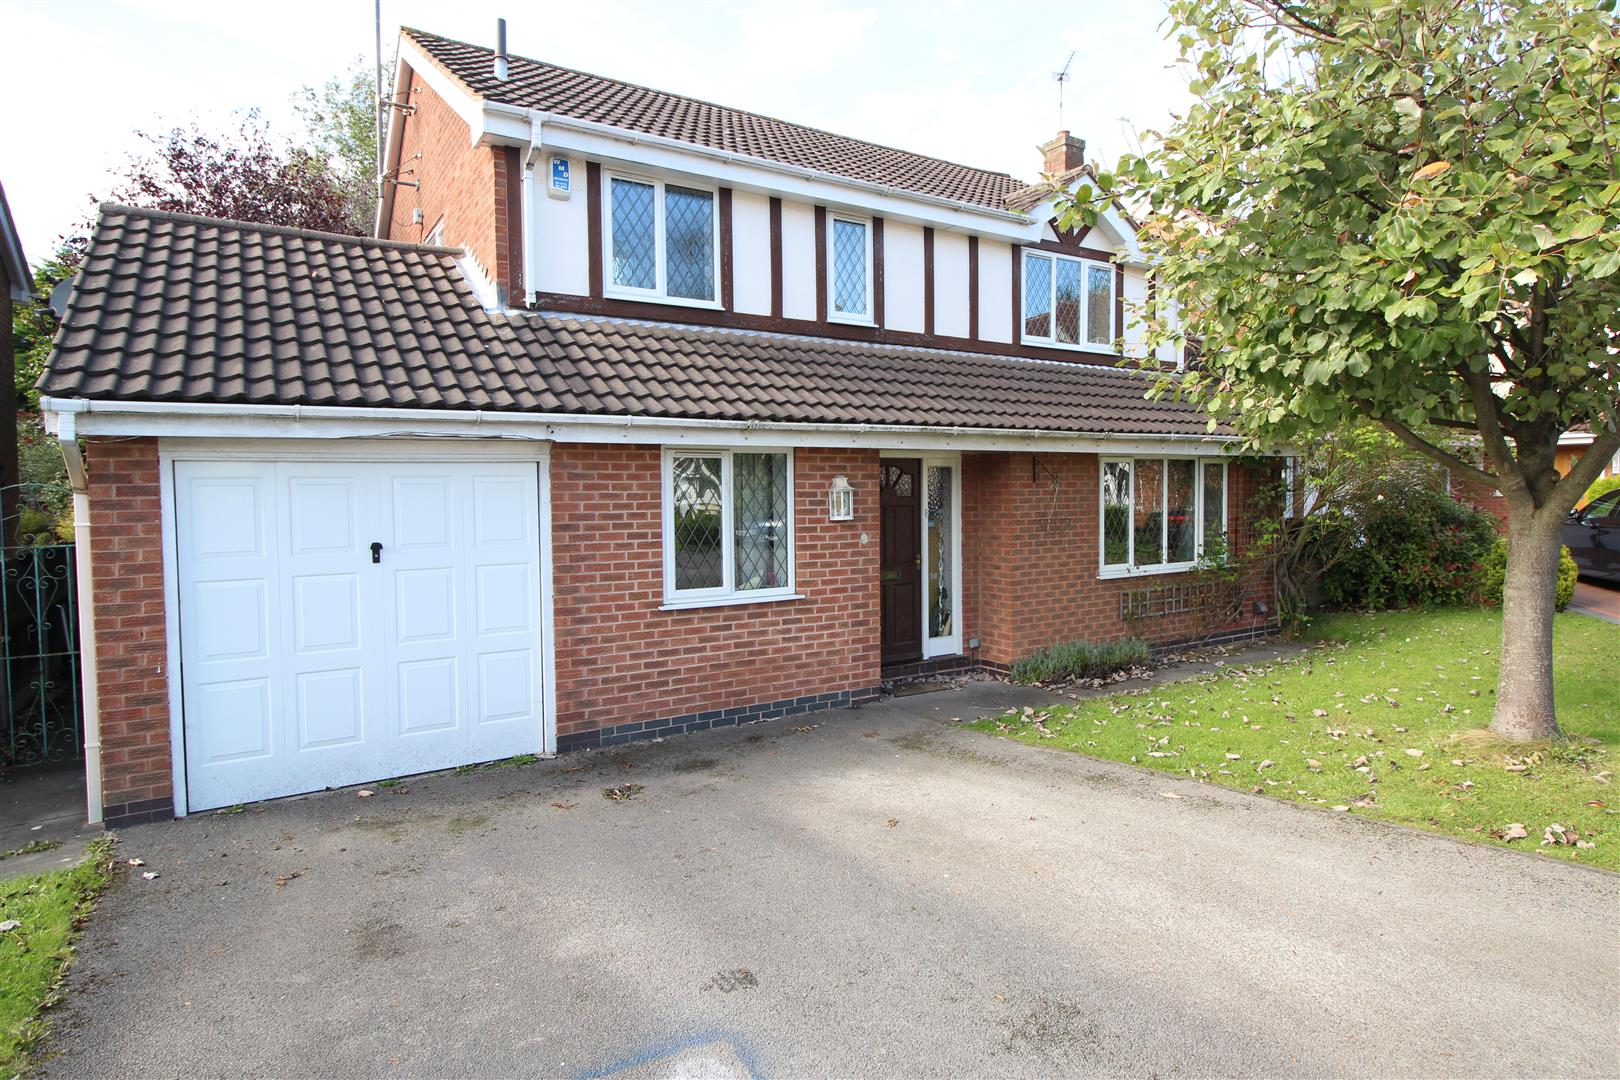 4 Bedrooms Detached House for sale in Edingale Court, Bramcote, Nottingham